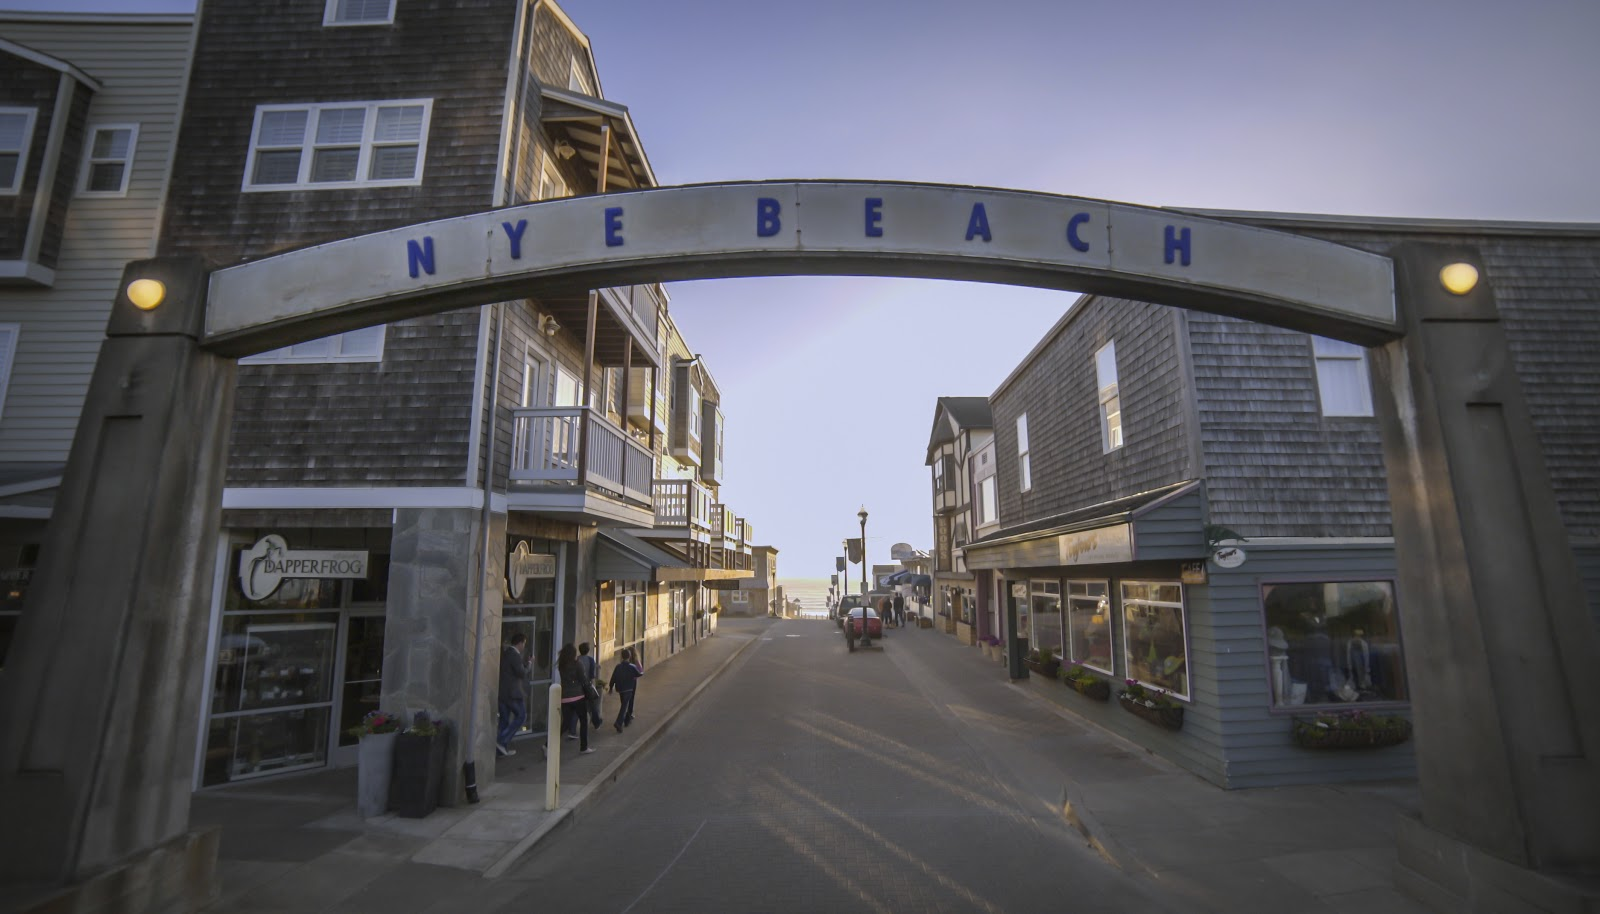 Newport's Nye Beach historic overlay district